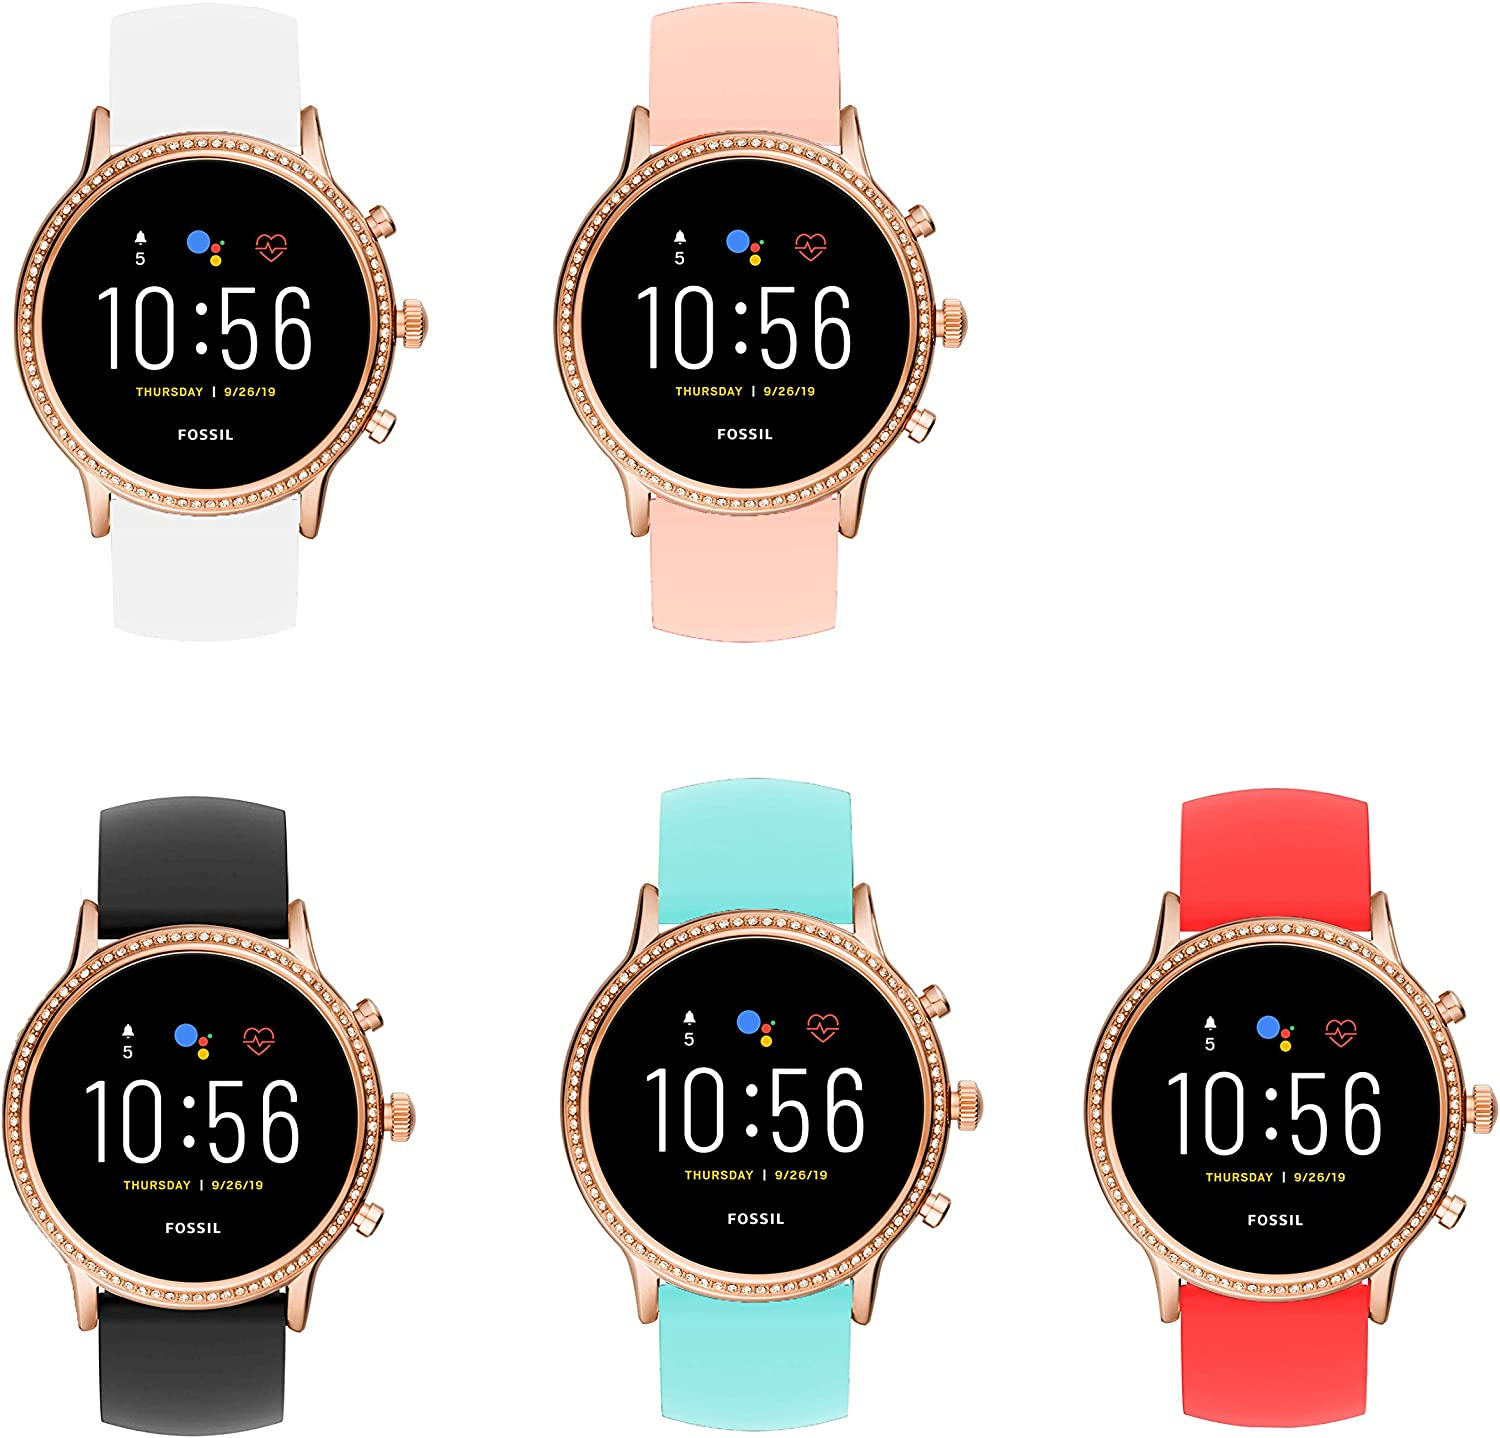 for Fossil Julianna Hr Bands, Blueshaw Sport Silicone Replacement Strap for Fossil GEN 5 SMARTWATCH - Julianna HR (5 Pack)